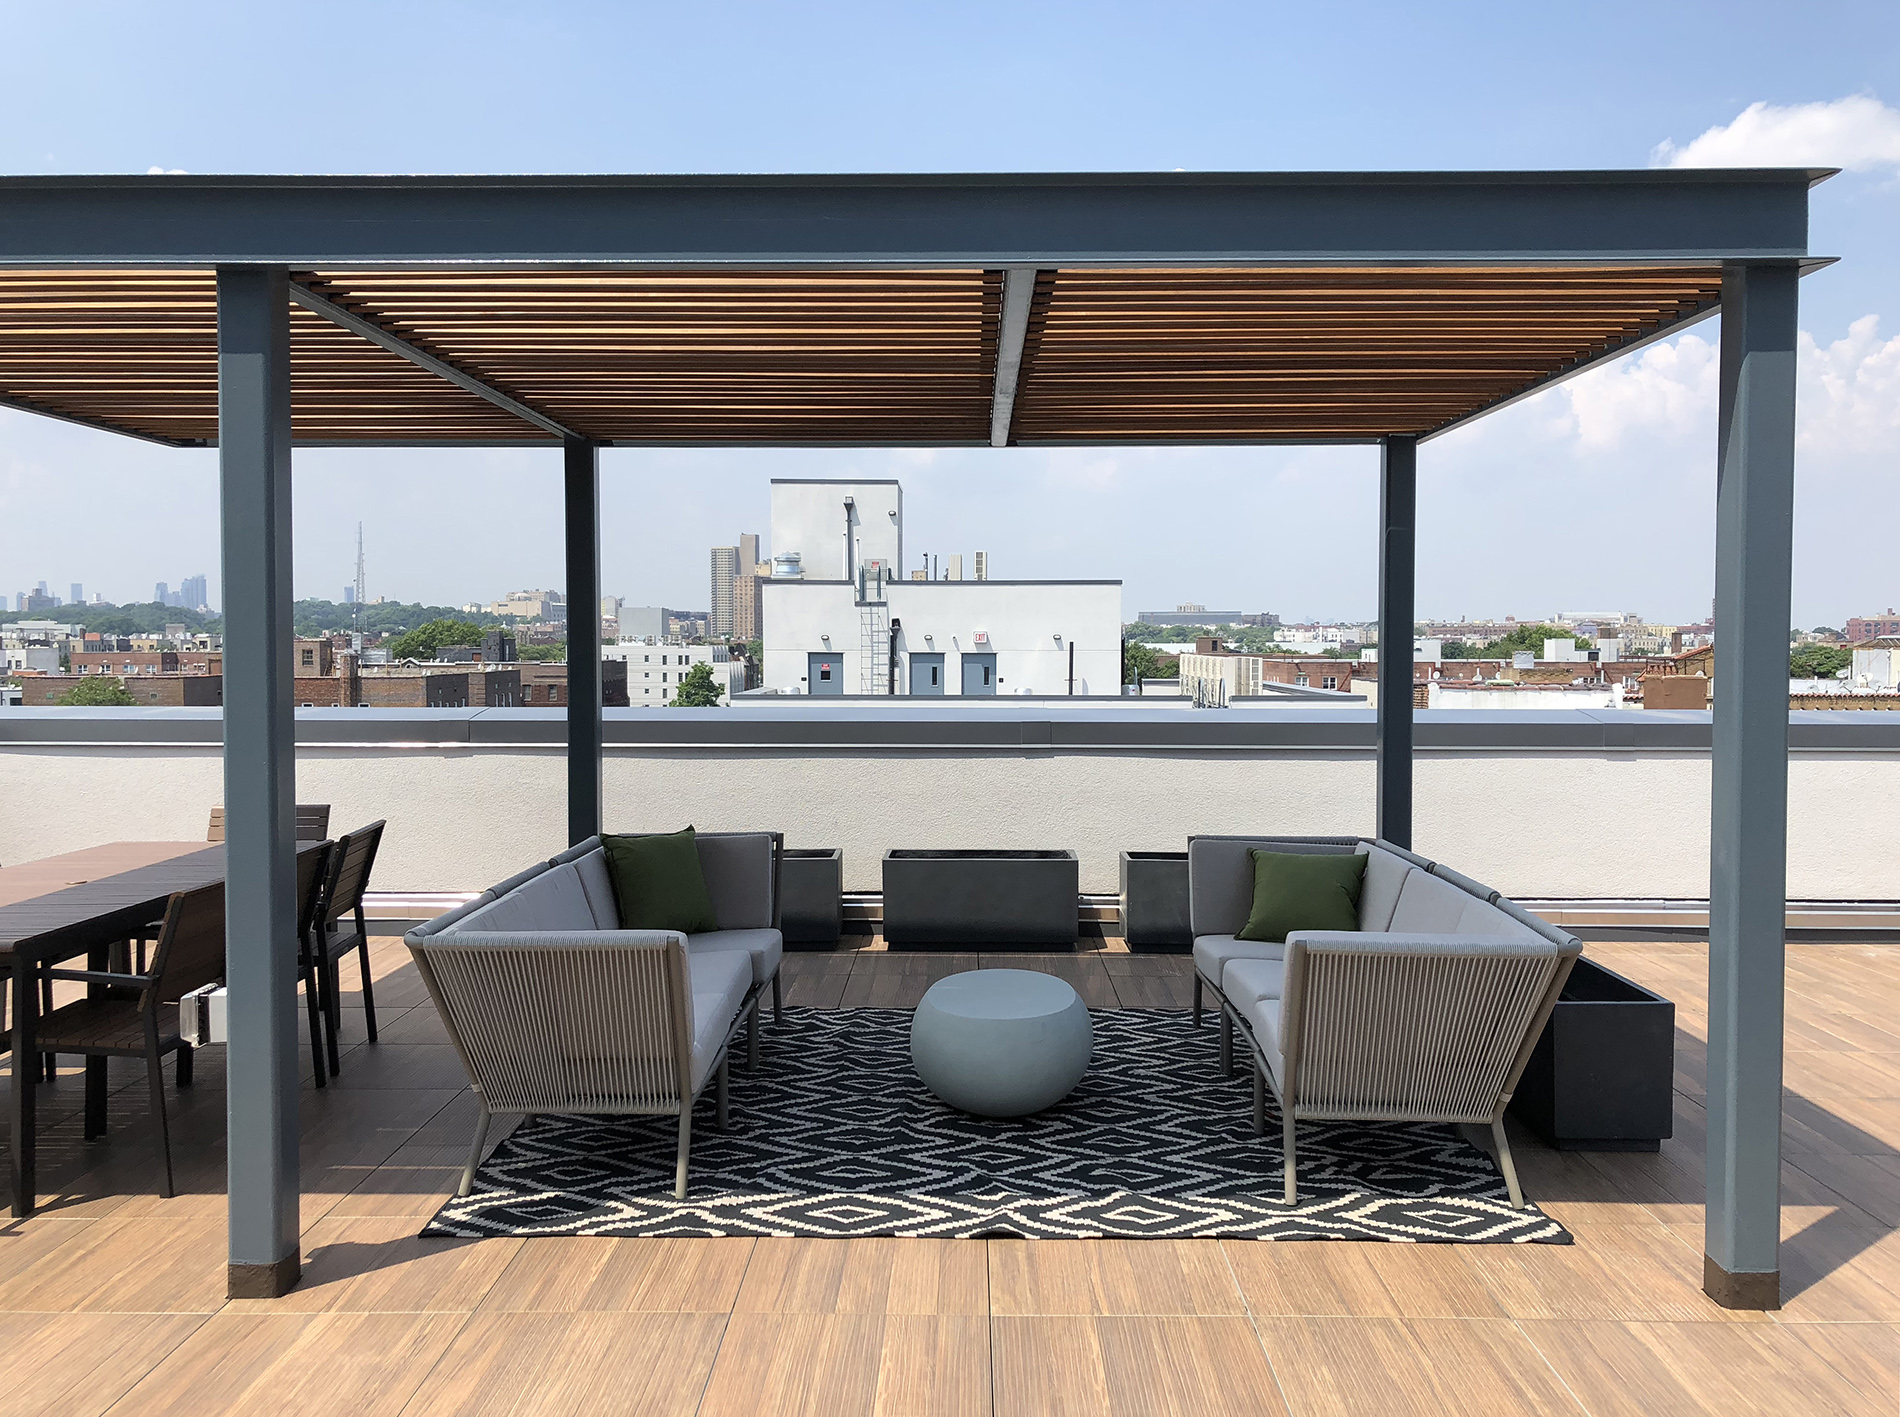 Roof Deck with Modern Seating